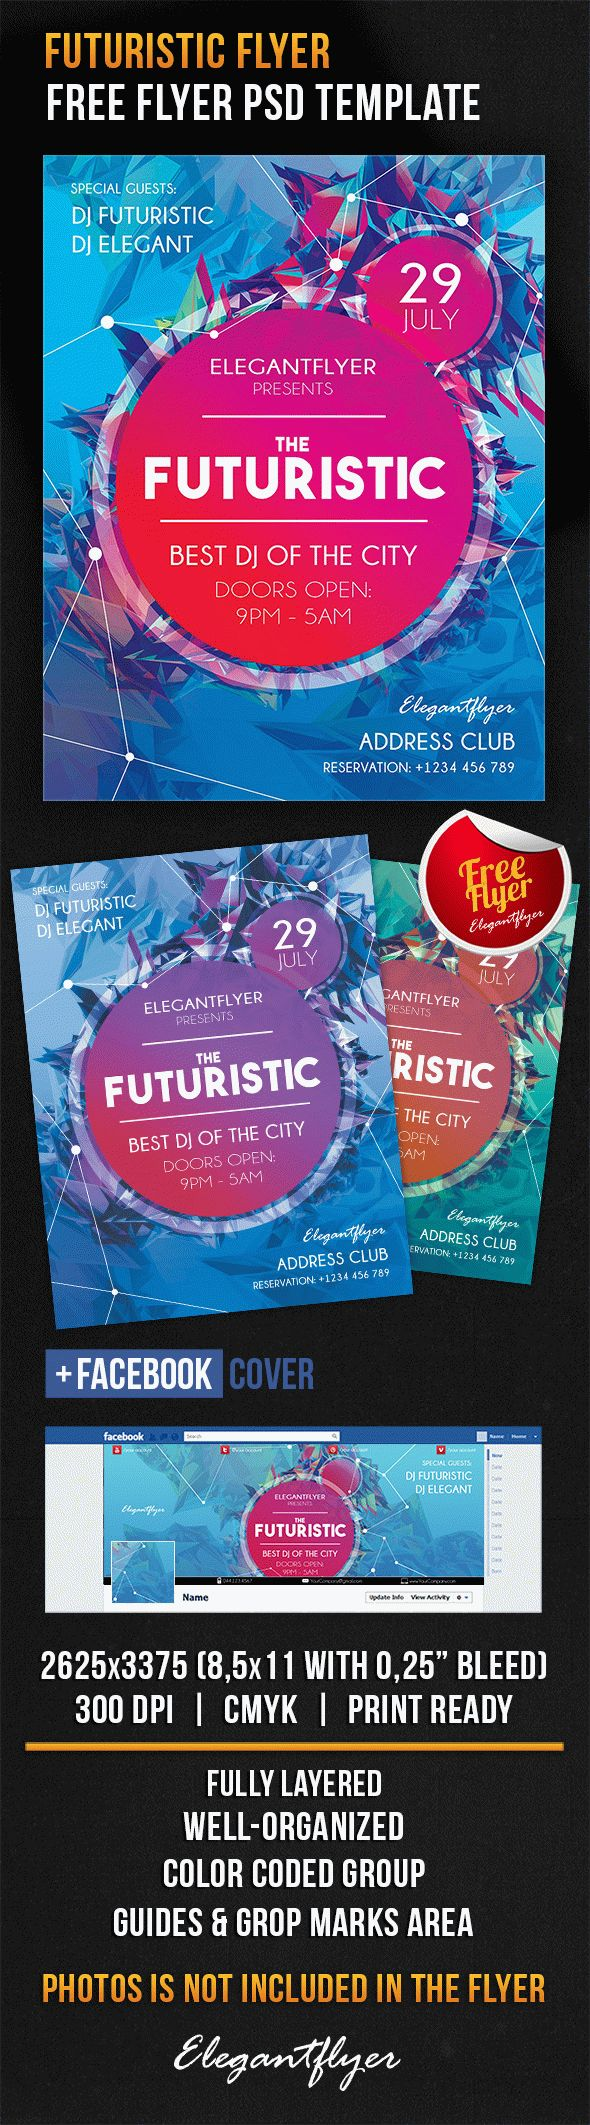 Futuristic Flyer – Free Flyer PSD Template + Facebook Cover